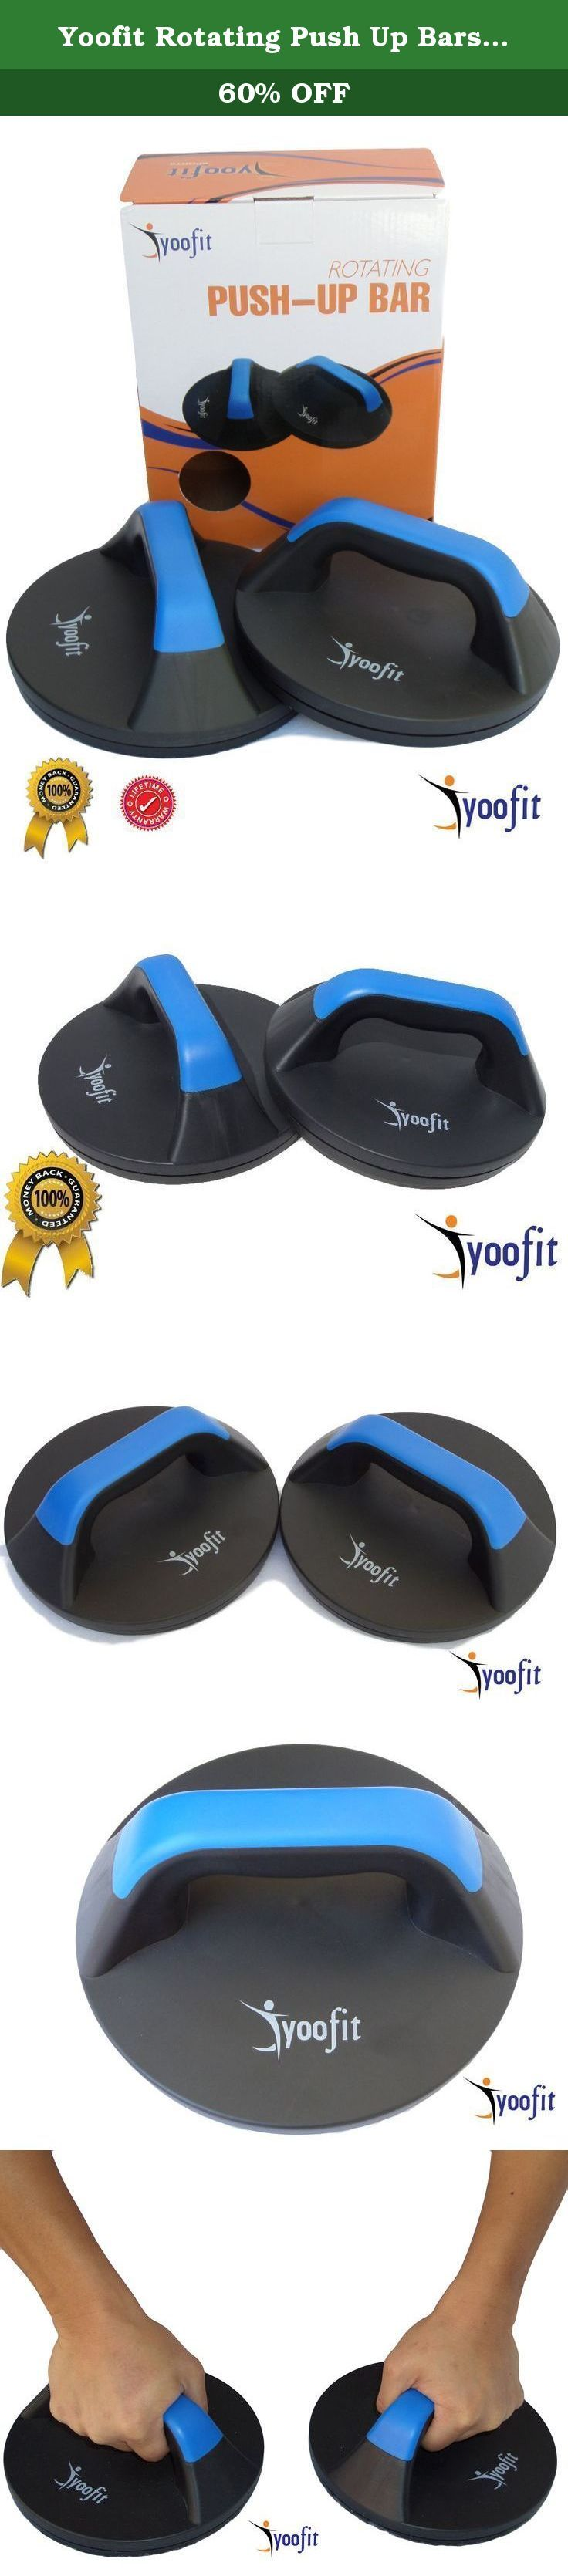 "Yoofit Rotating Push Up Bars - Perfect Get Upper Body Muscle, Core Strength and Provide Comfort Less Wrist Strain - Smooth Rotation Handle Stand Bar For CrossFit Workout or Fitness Training. Box of Rotating Push Up Bars Stand Includes: • Fully assembled pair of Push-up handles bar with 8"" in diameter with easy hand rip handle. Why Choose Yoofit Sports Ab Wheel Roller? • Manufacture with high quality parts material, the pair of rotating push-up handle bars are well constructed with heavy…"